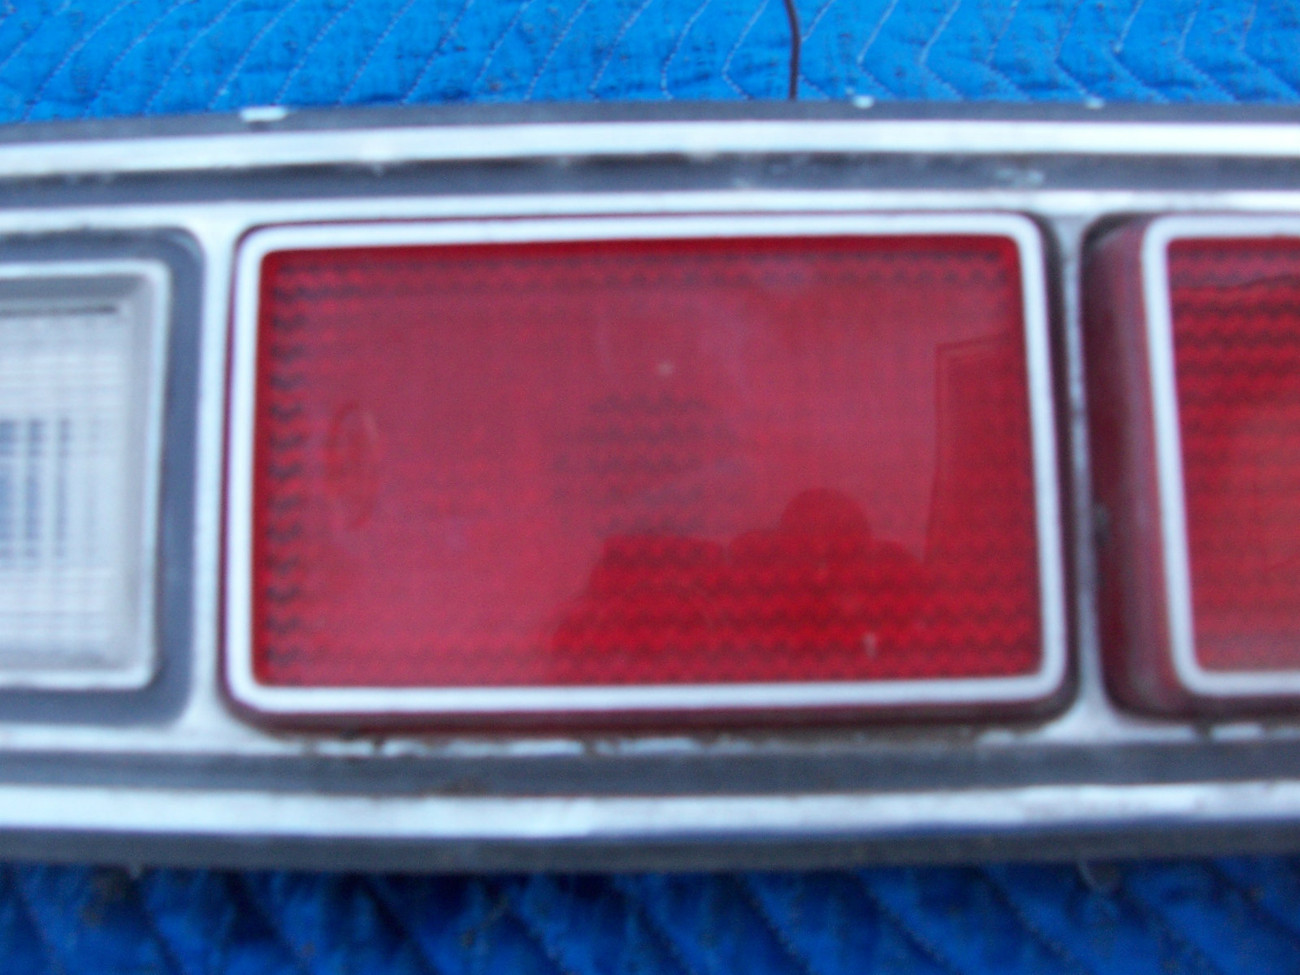 1973 MARQUIS 2 DOOR BROUGHAM RIGHT TAILLIGHT OEM USED ORIGINAL MERCURY FORD PART image 4